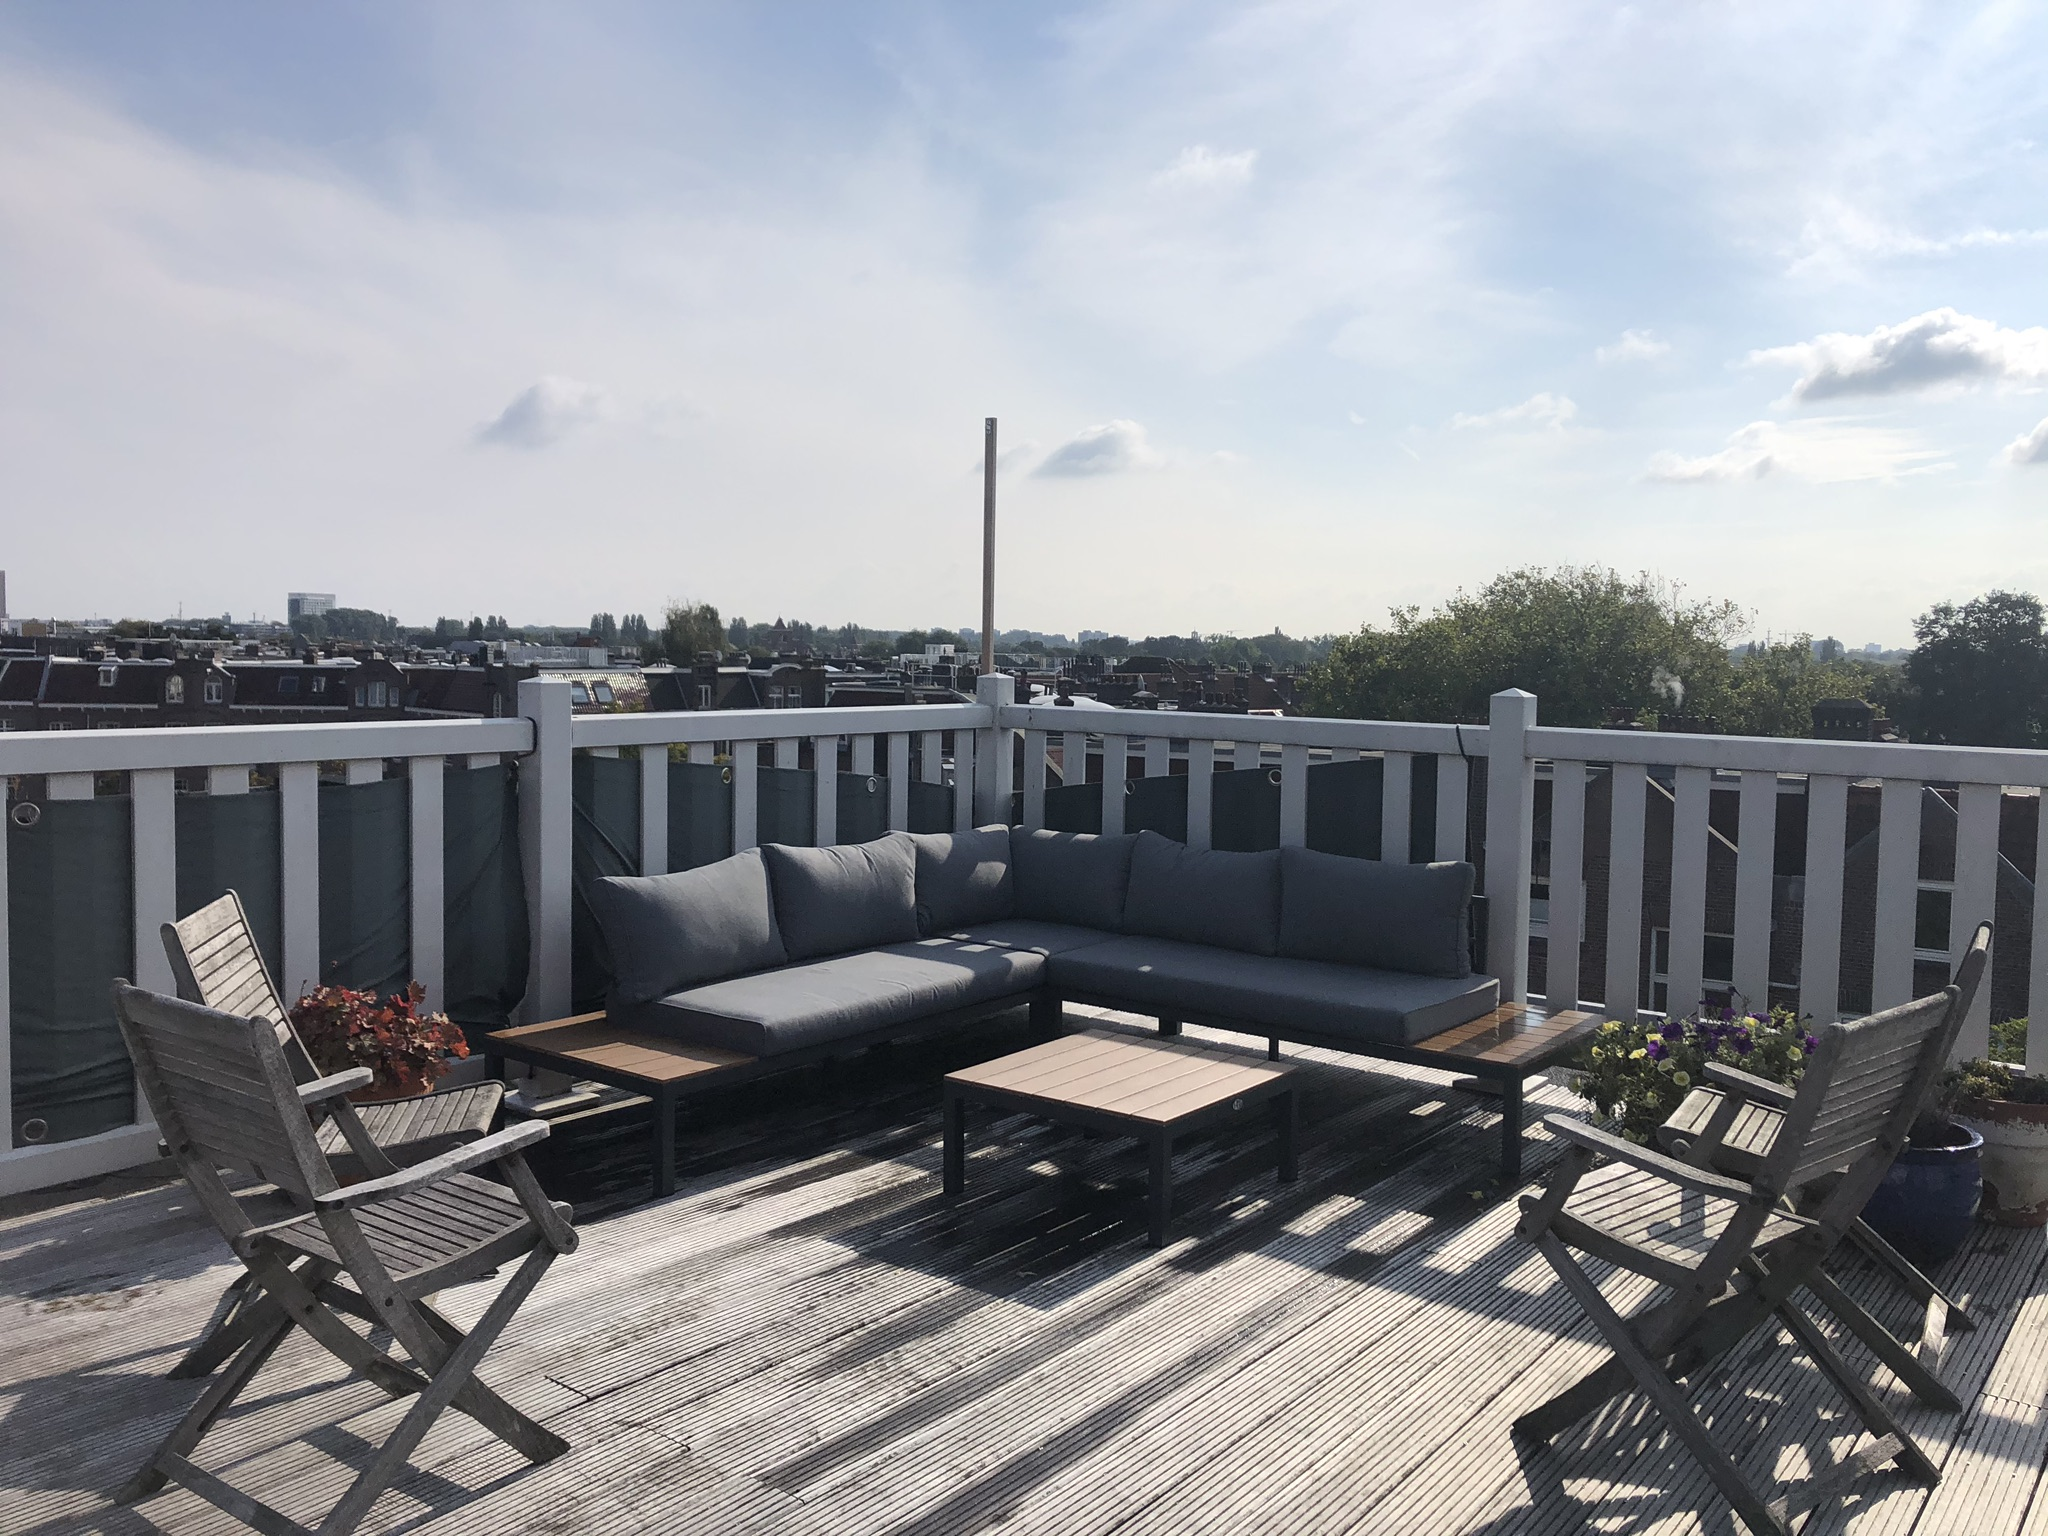 Light Spacious Apartment In Amsterdam With Rooftop Appartements à Louer à Amsterdam Noord Holland Pays Bas